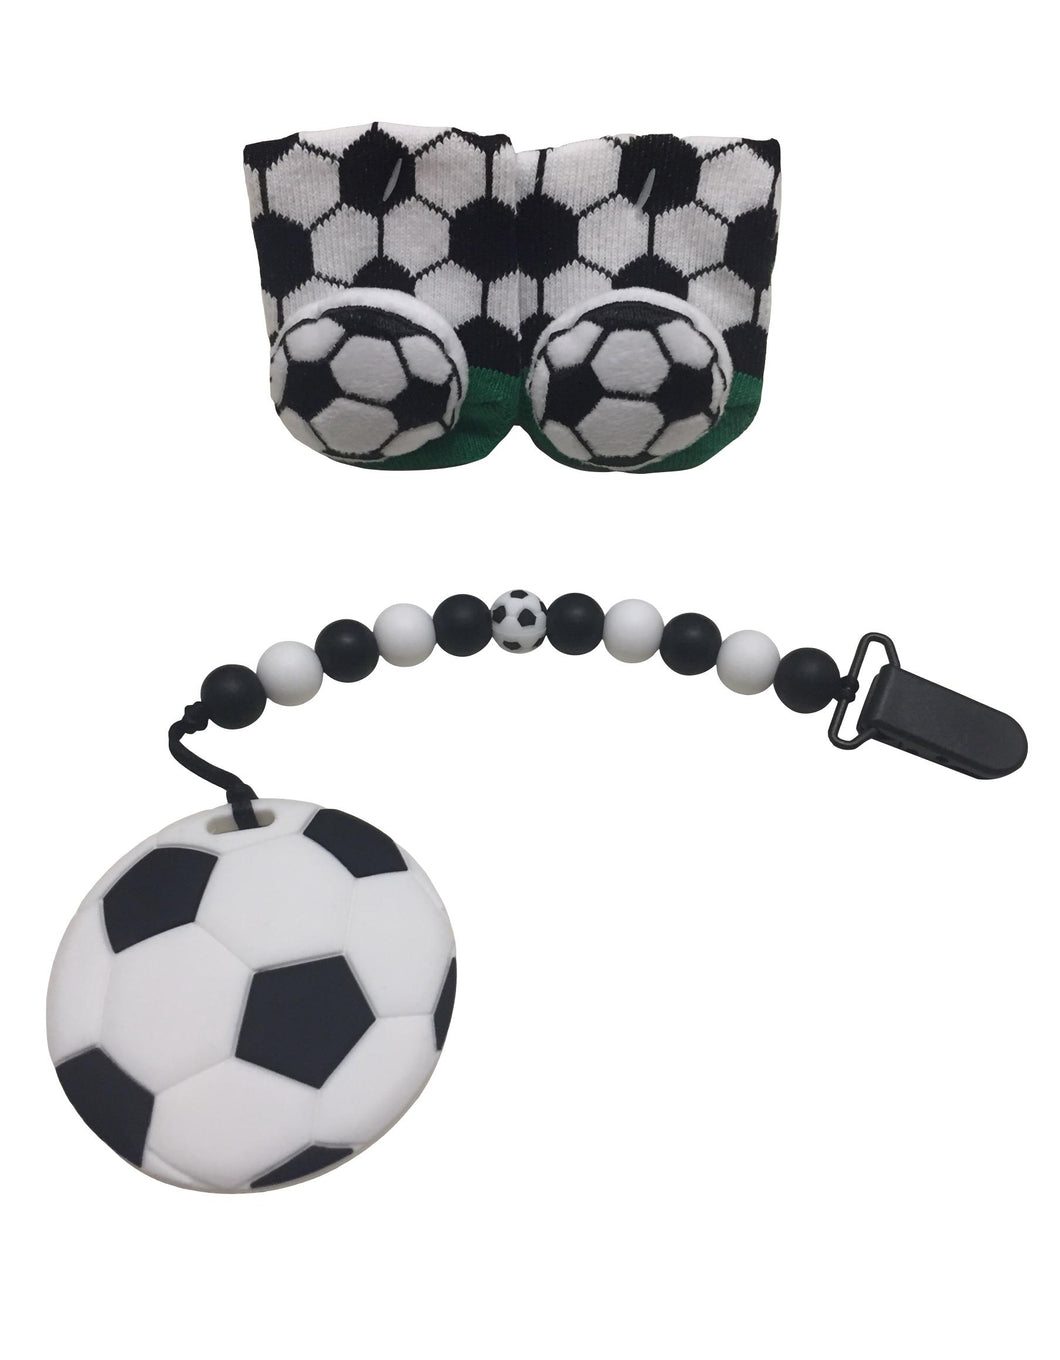 Soccer ⚽️ teether gift set